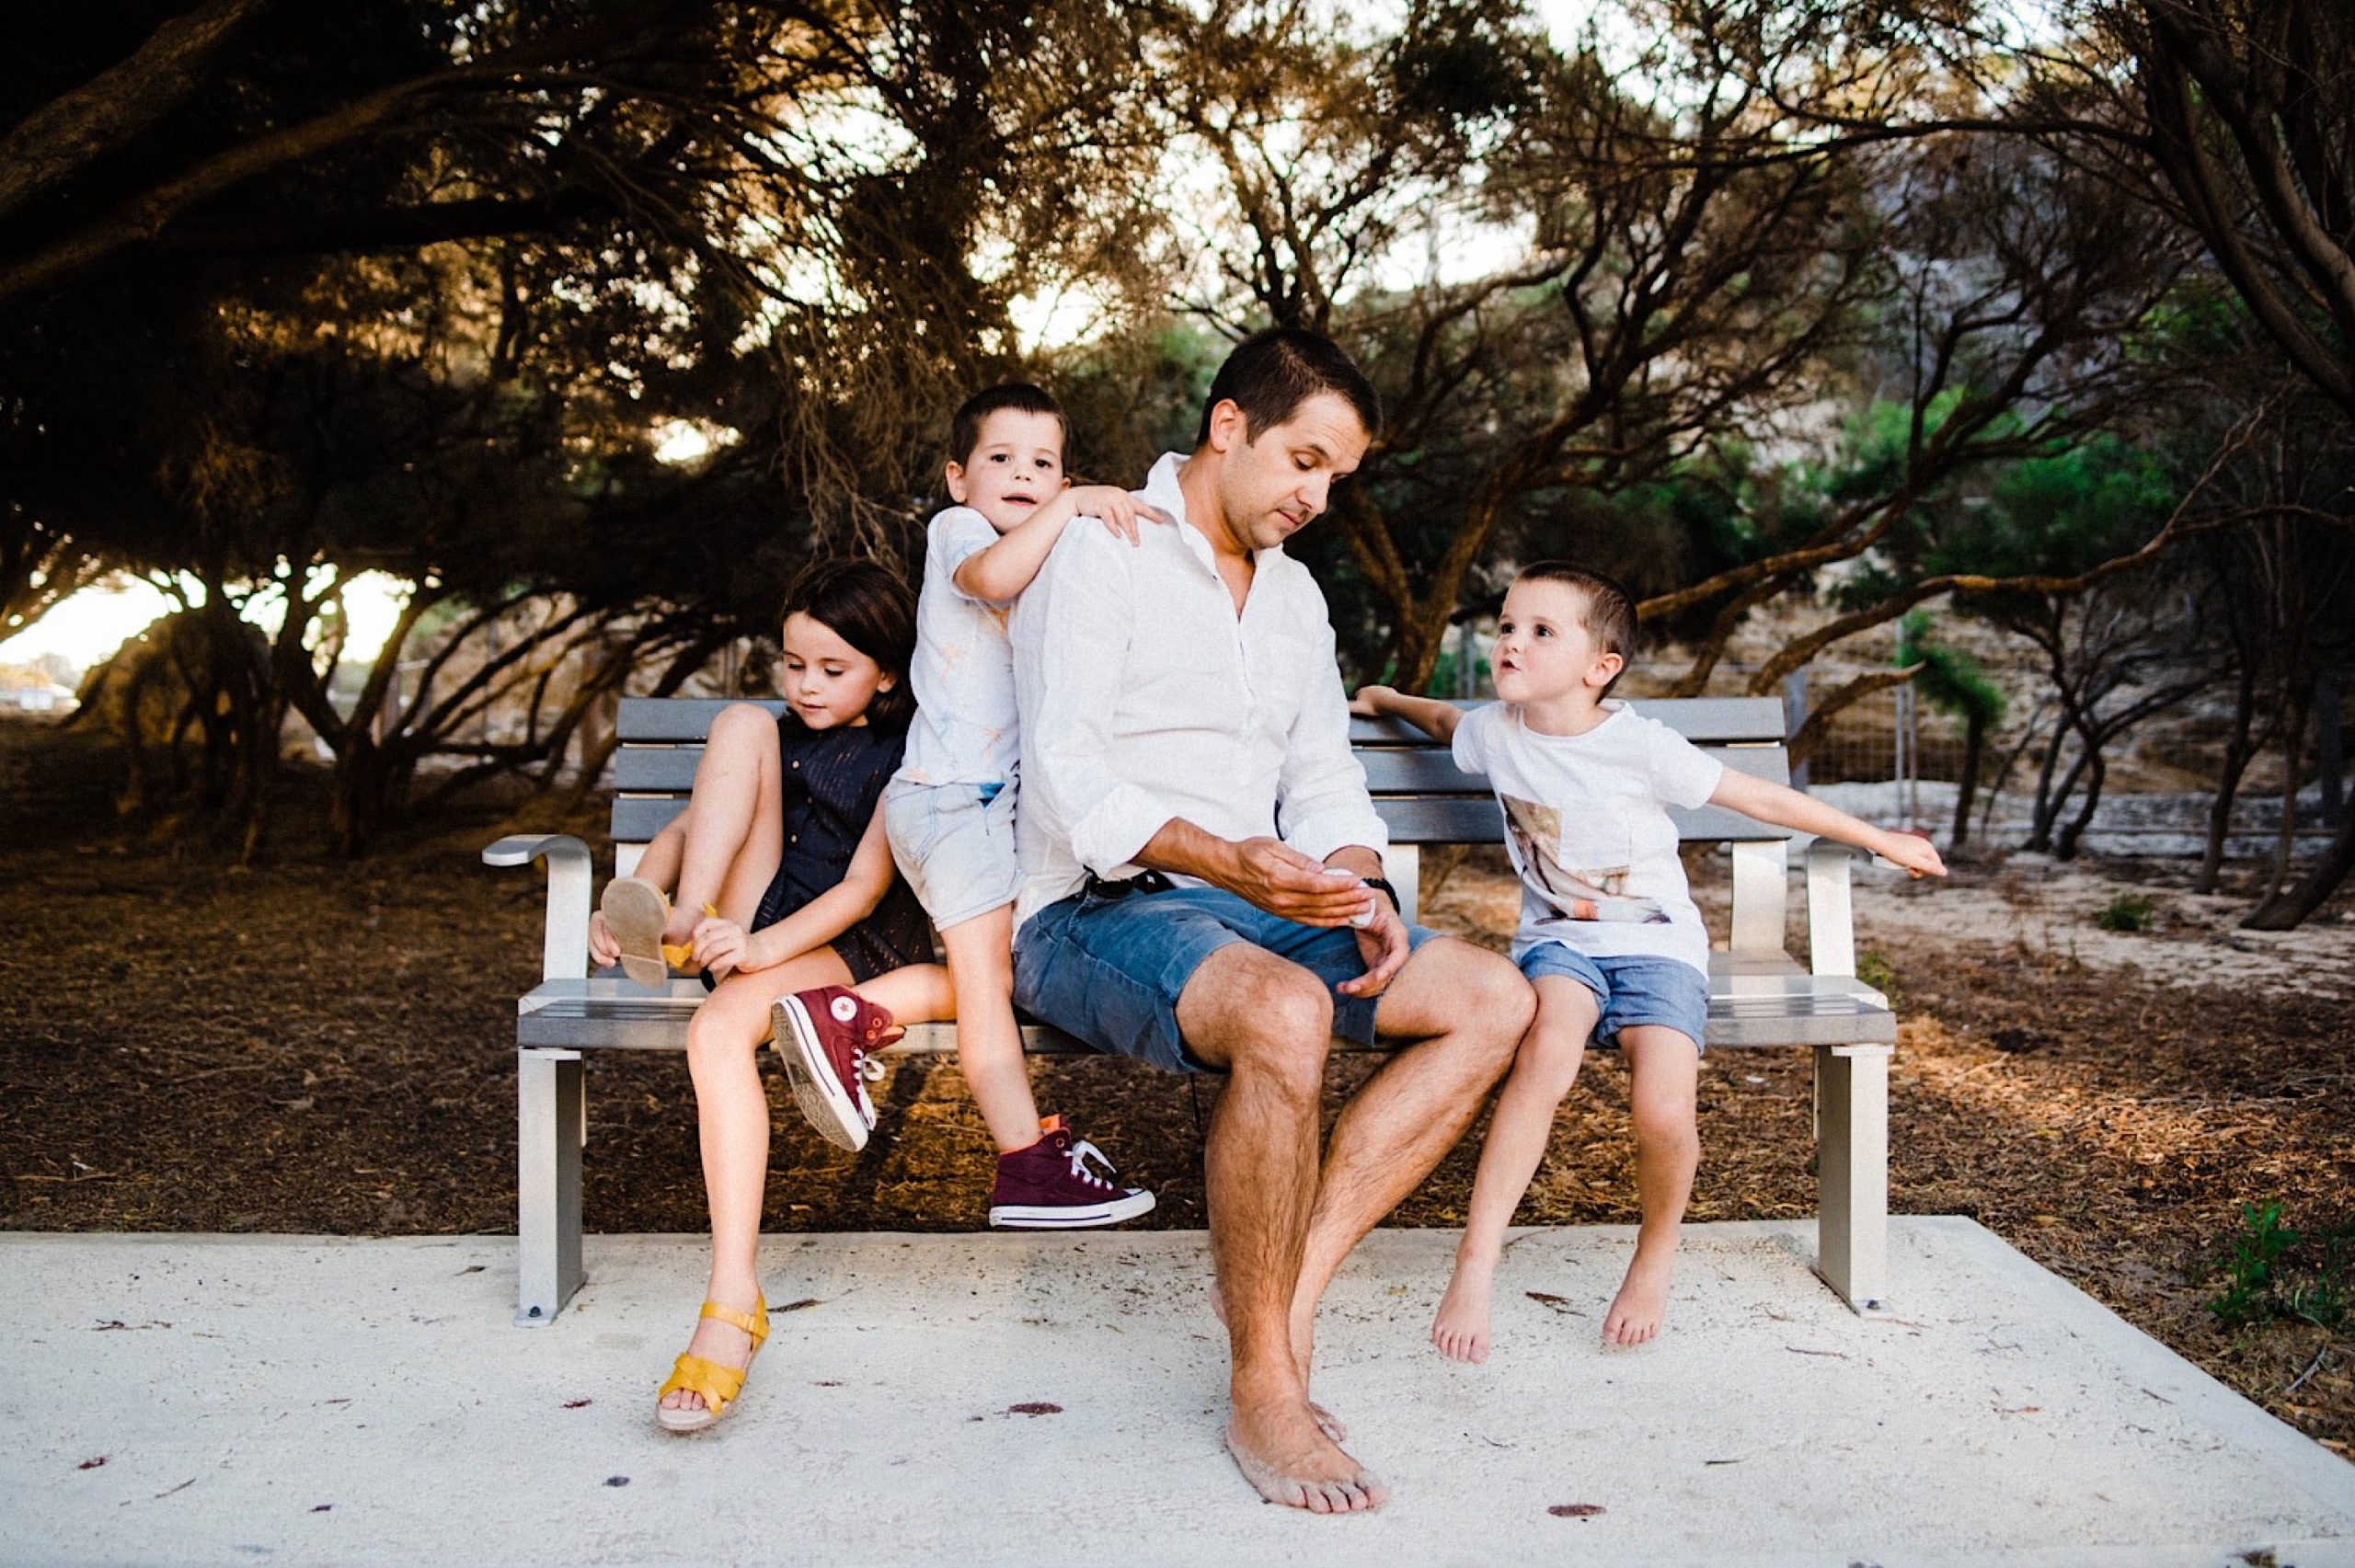 Candid Fremantle Family Photography of a Dad sitting on a park bench, surrounded by his three children - one hanging off of his shoulder, on sitting putting her shoes on, and one sitting talking to him.